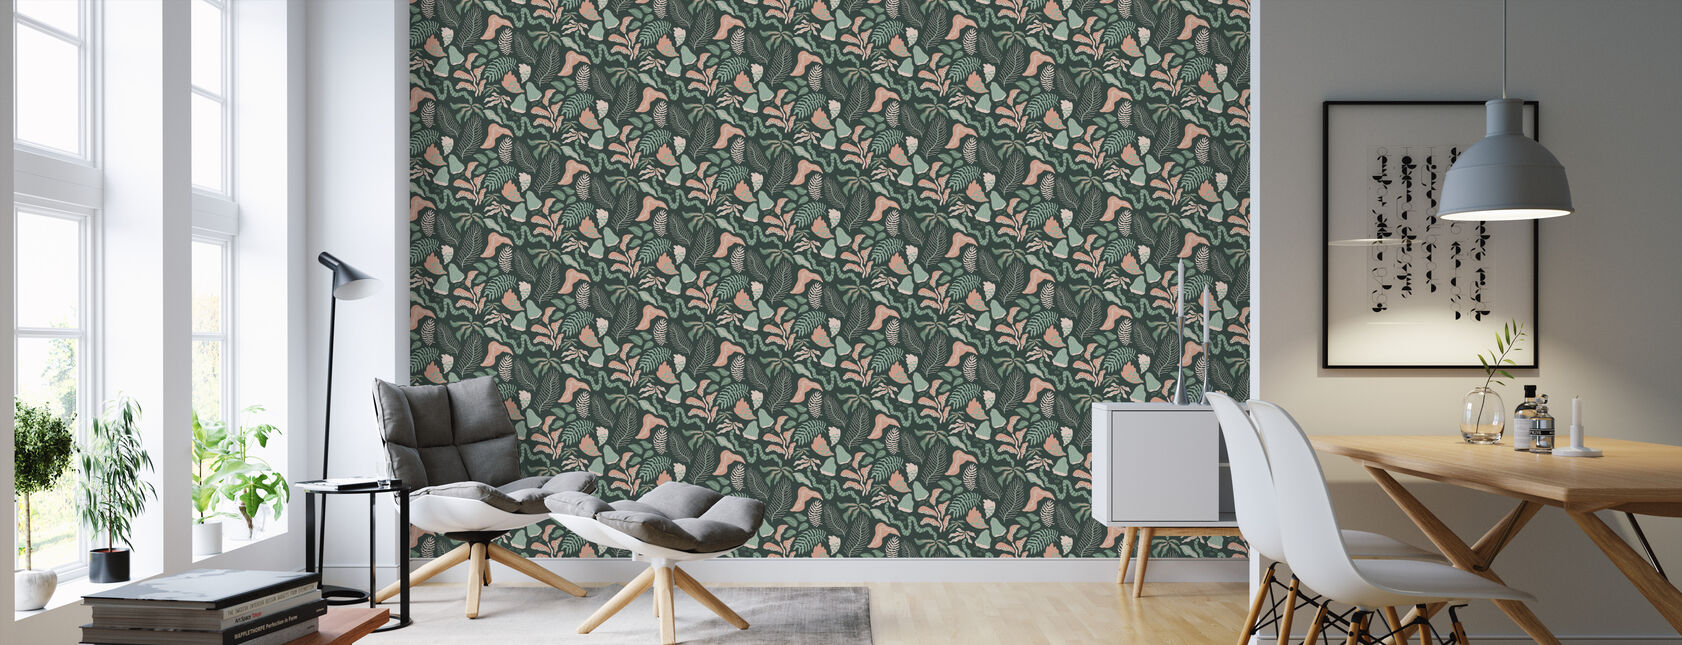 Botanica - Green - Wallpaper - Living Room